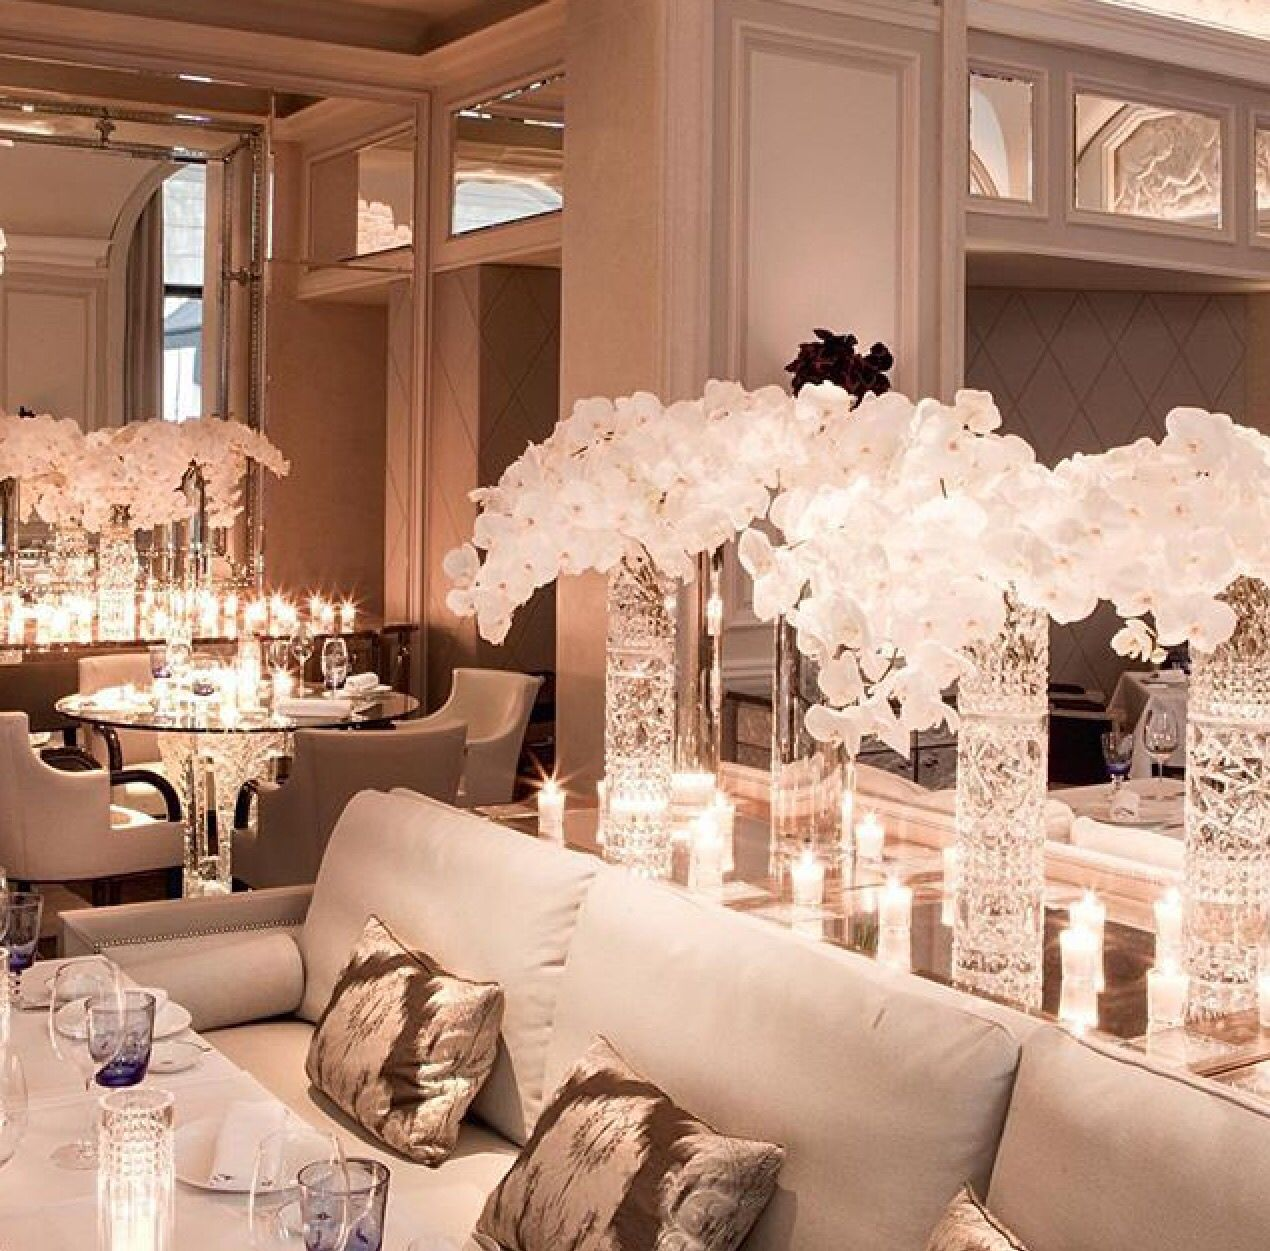 Lux crystal orchard decor